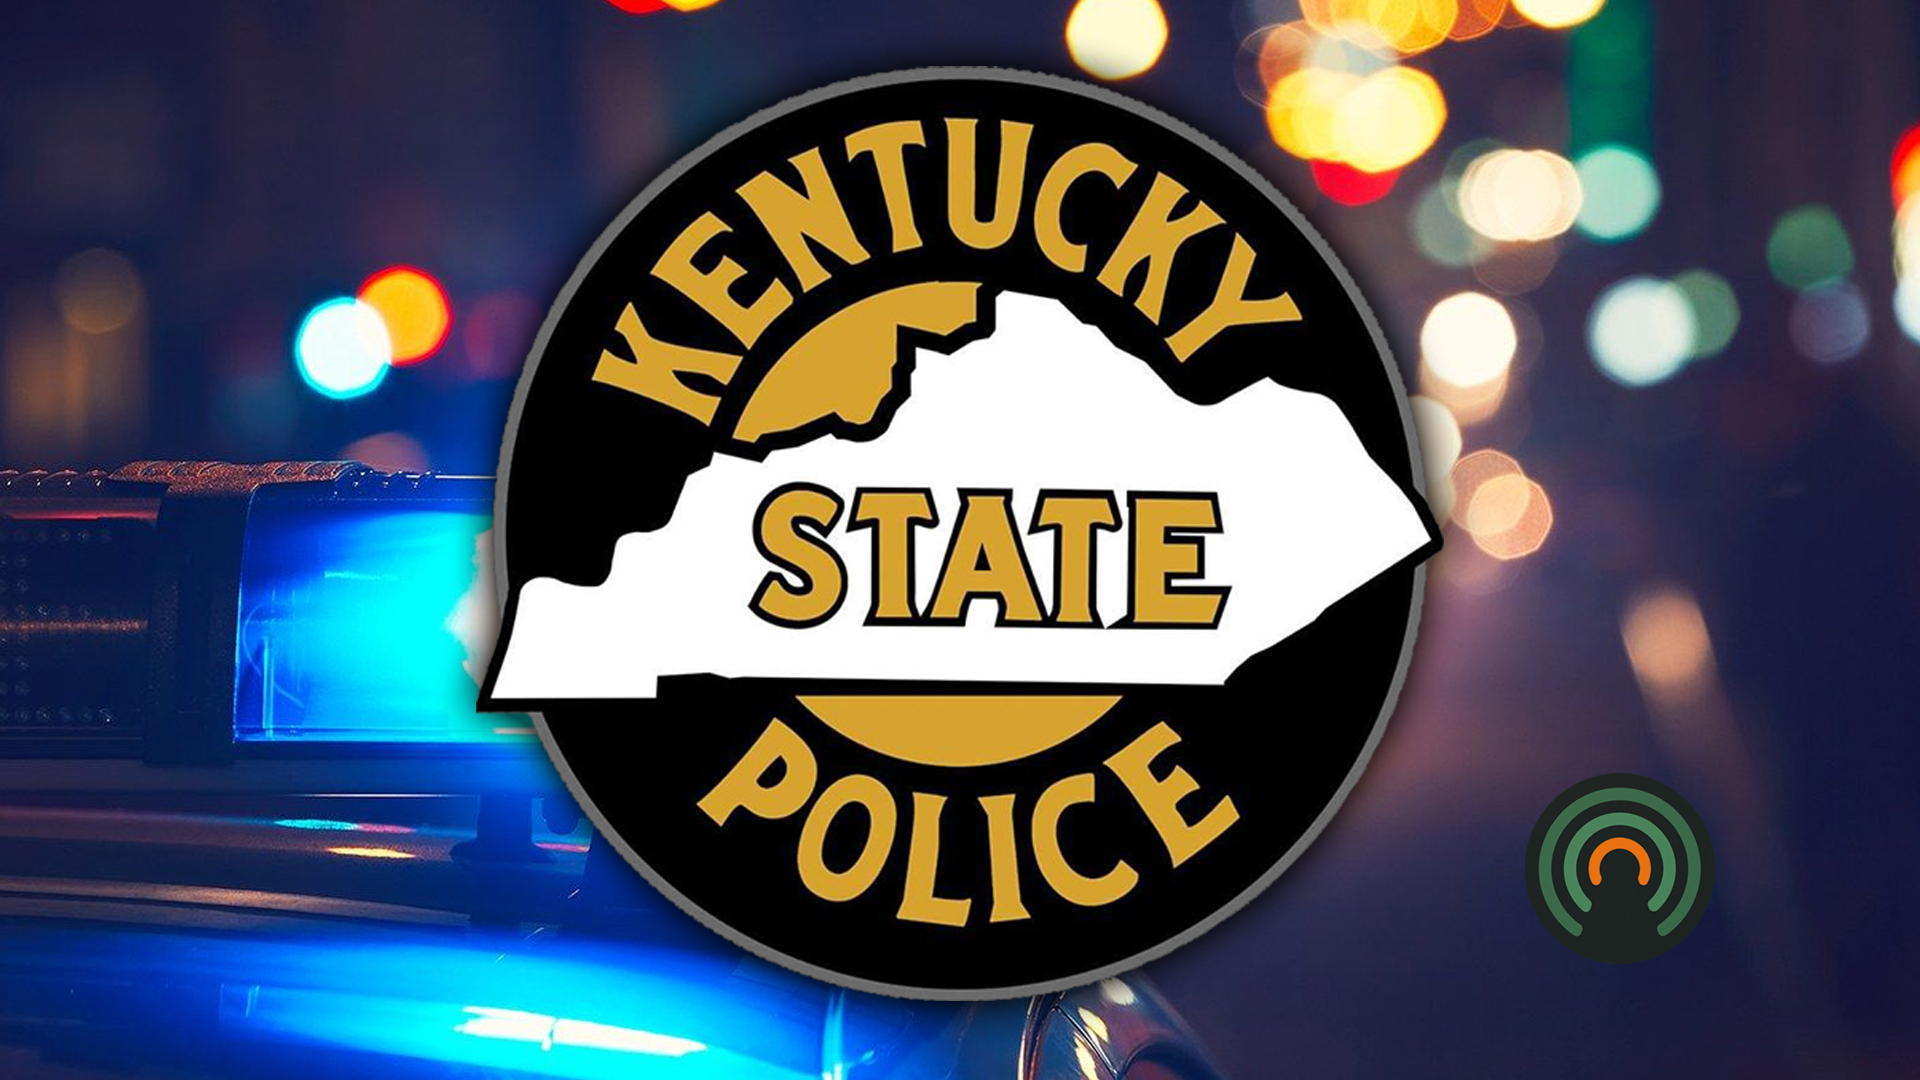 Man killed in officer-involved shooting in Pike County